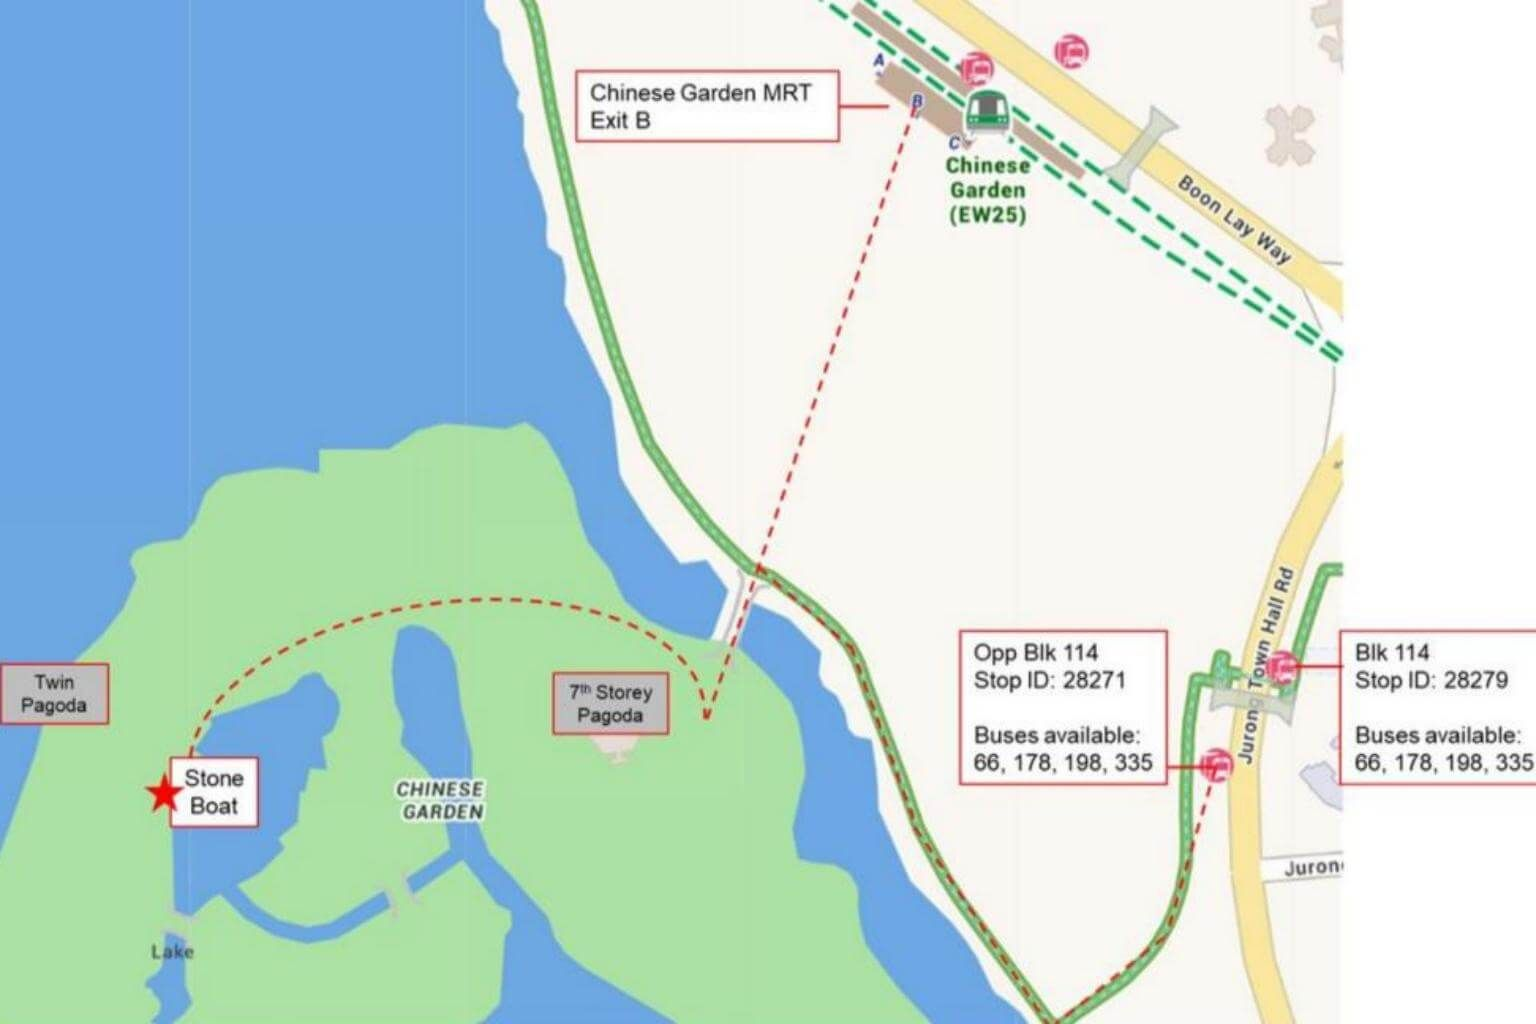 Gardening Plots In Ang Mo Kio And Jurong Open For Registration On